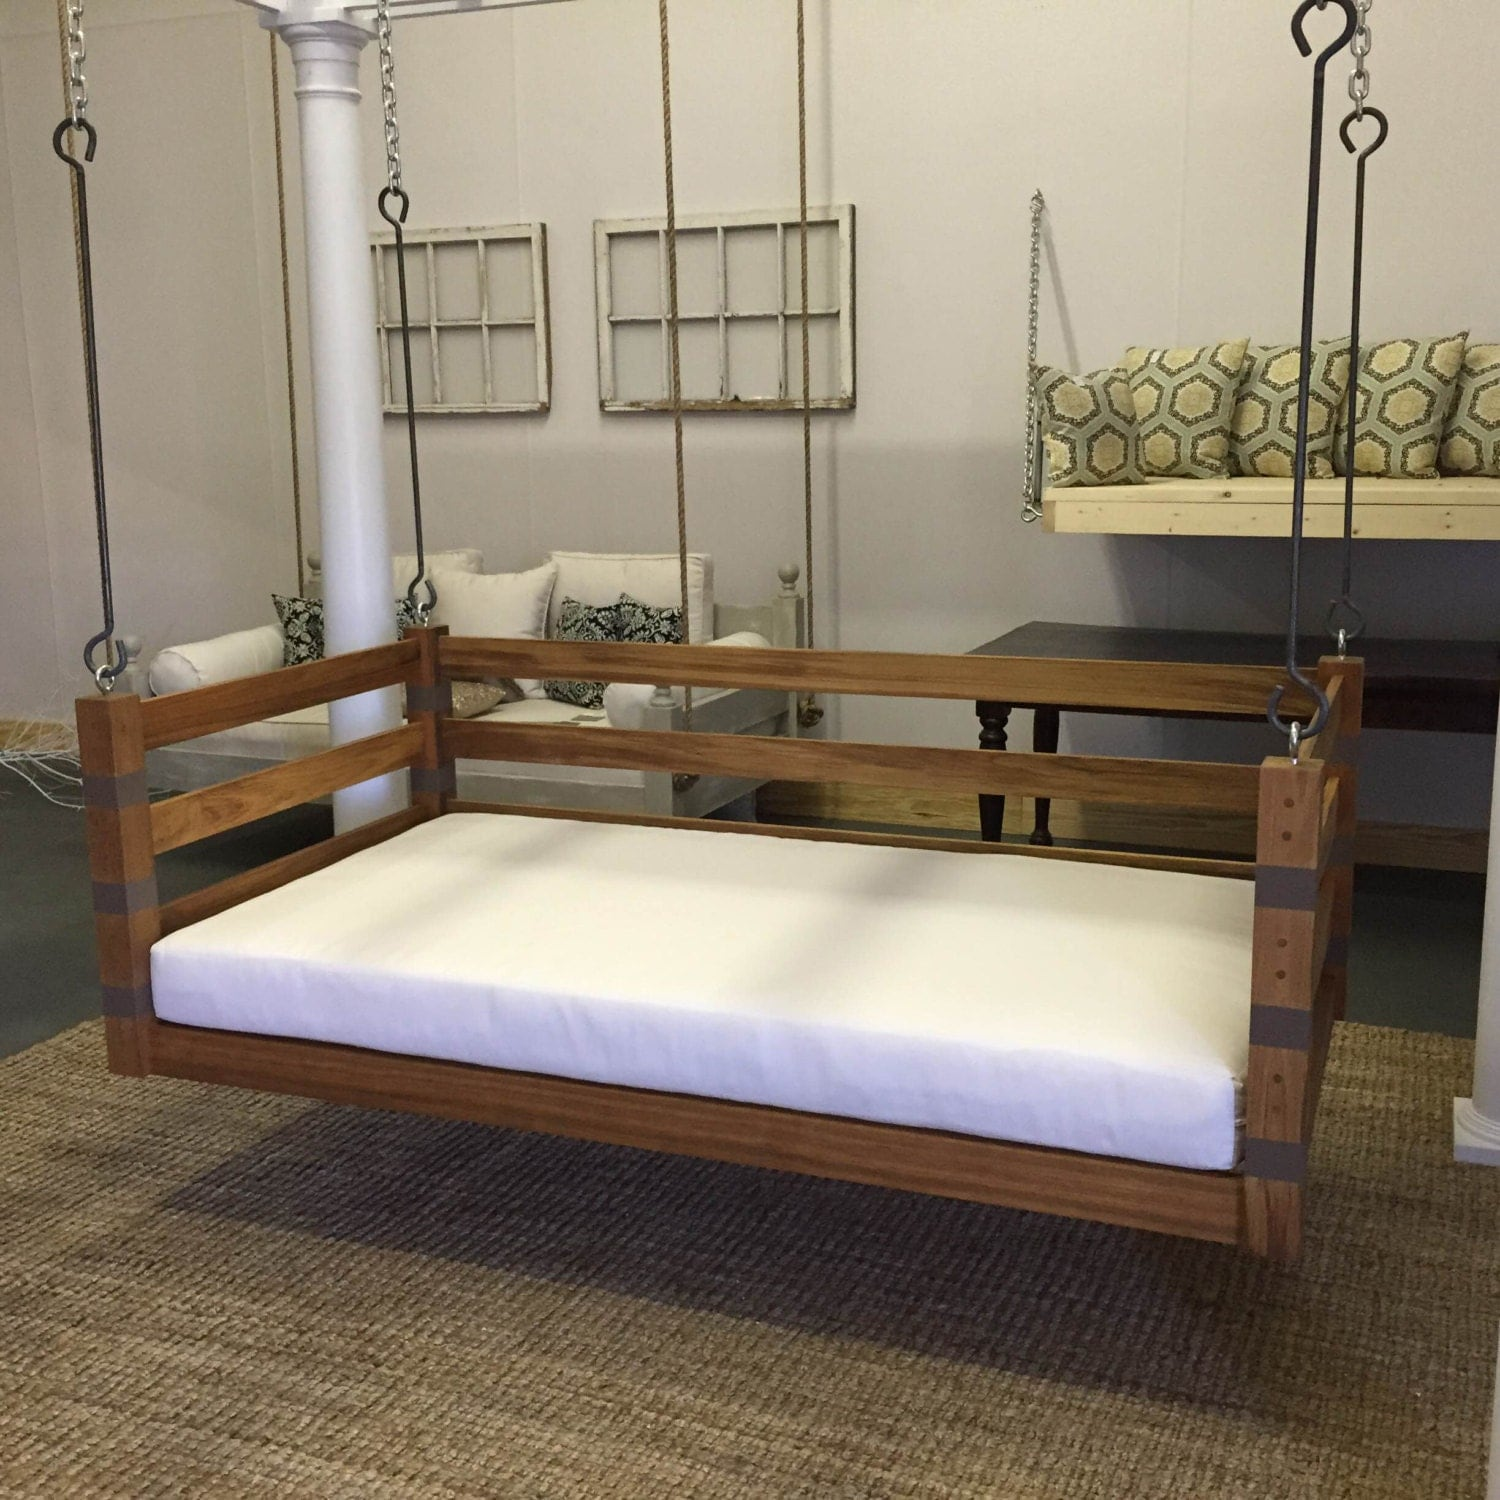 porch swing the ion swing bed free shipping. Black Bedroom Furniture Sets. Home Design Ideas